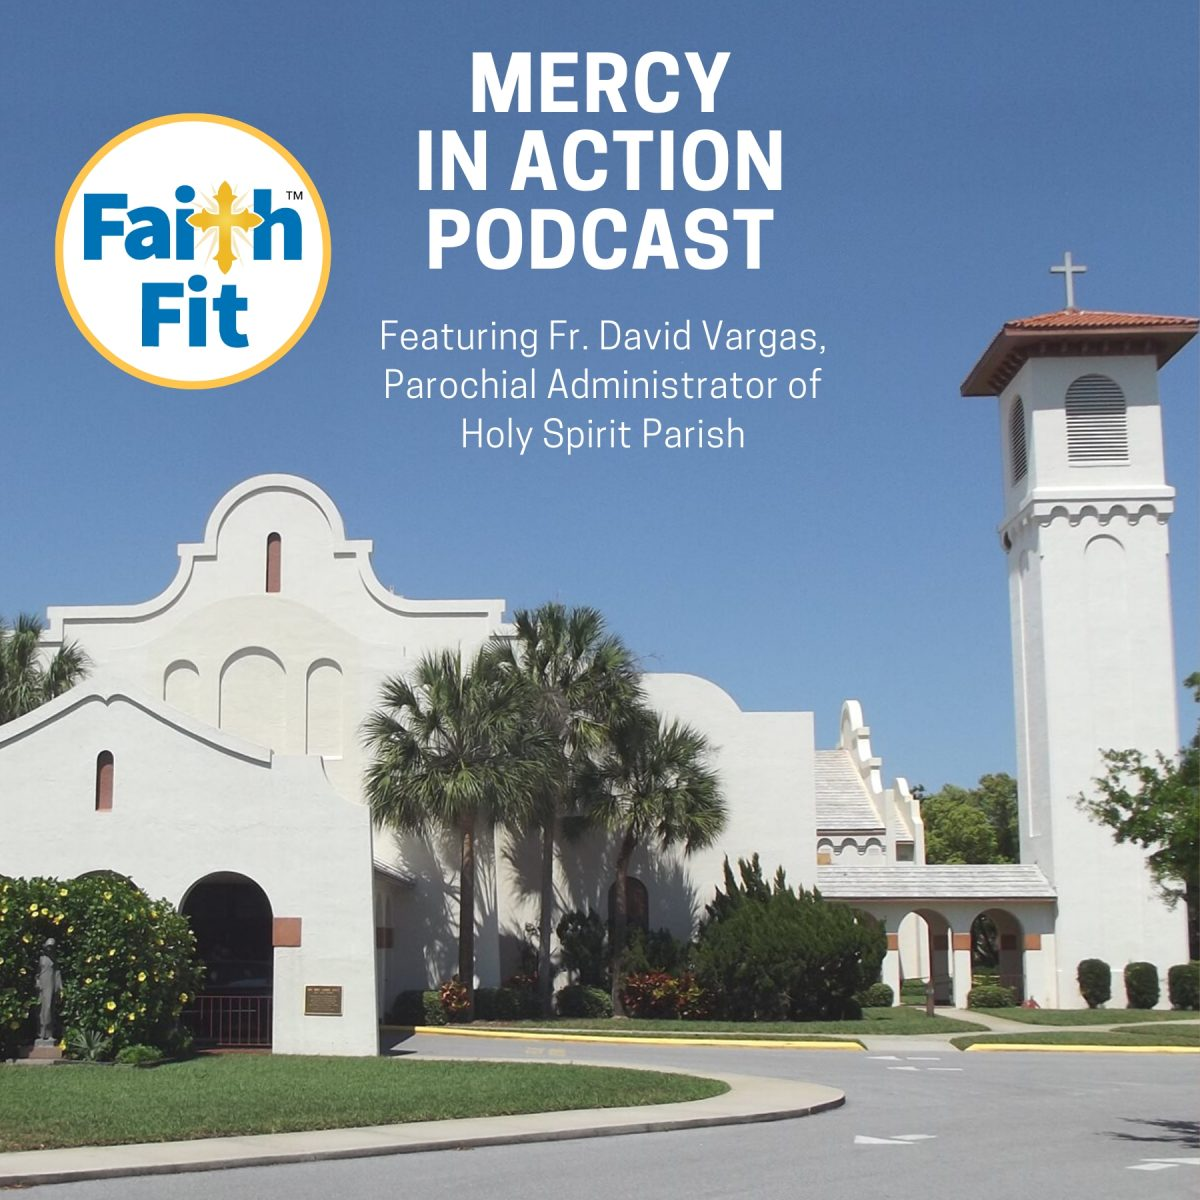 #11: Holy Spirit Parish in Lake Wales